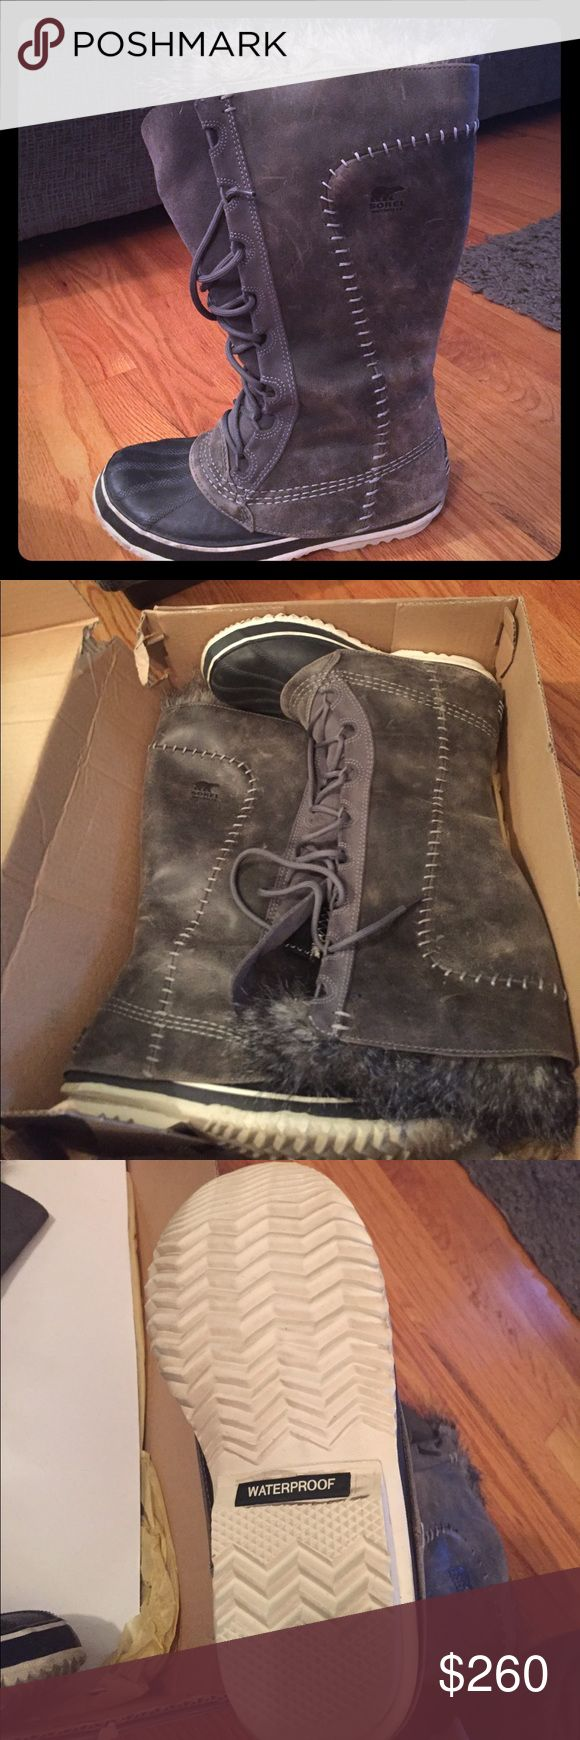 Sorel Cate the Great Size 8 One pair of Cate the Great Sorels winter boots. Sorel Shoes Winter & Rain Boots